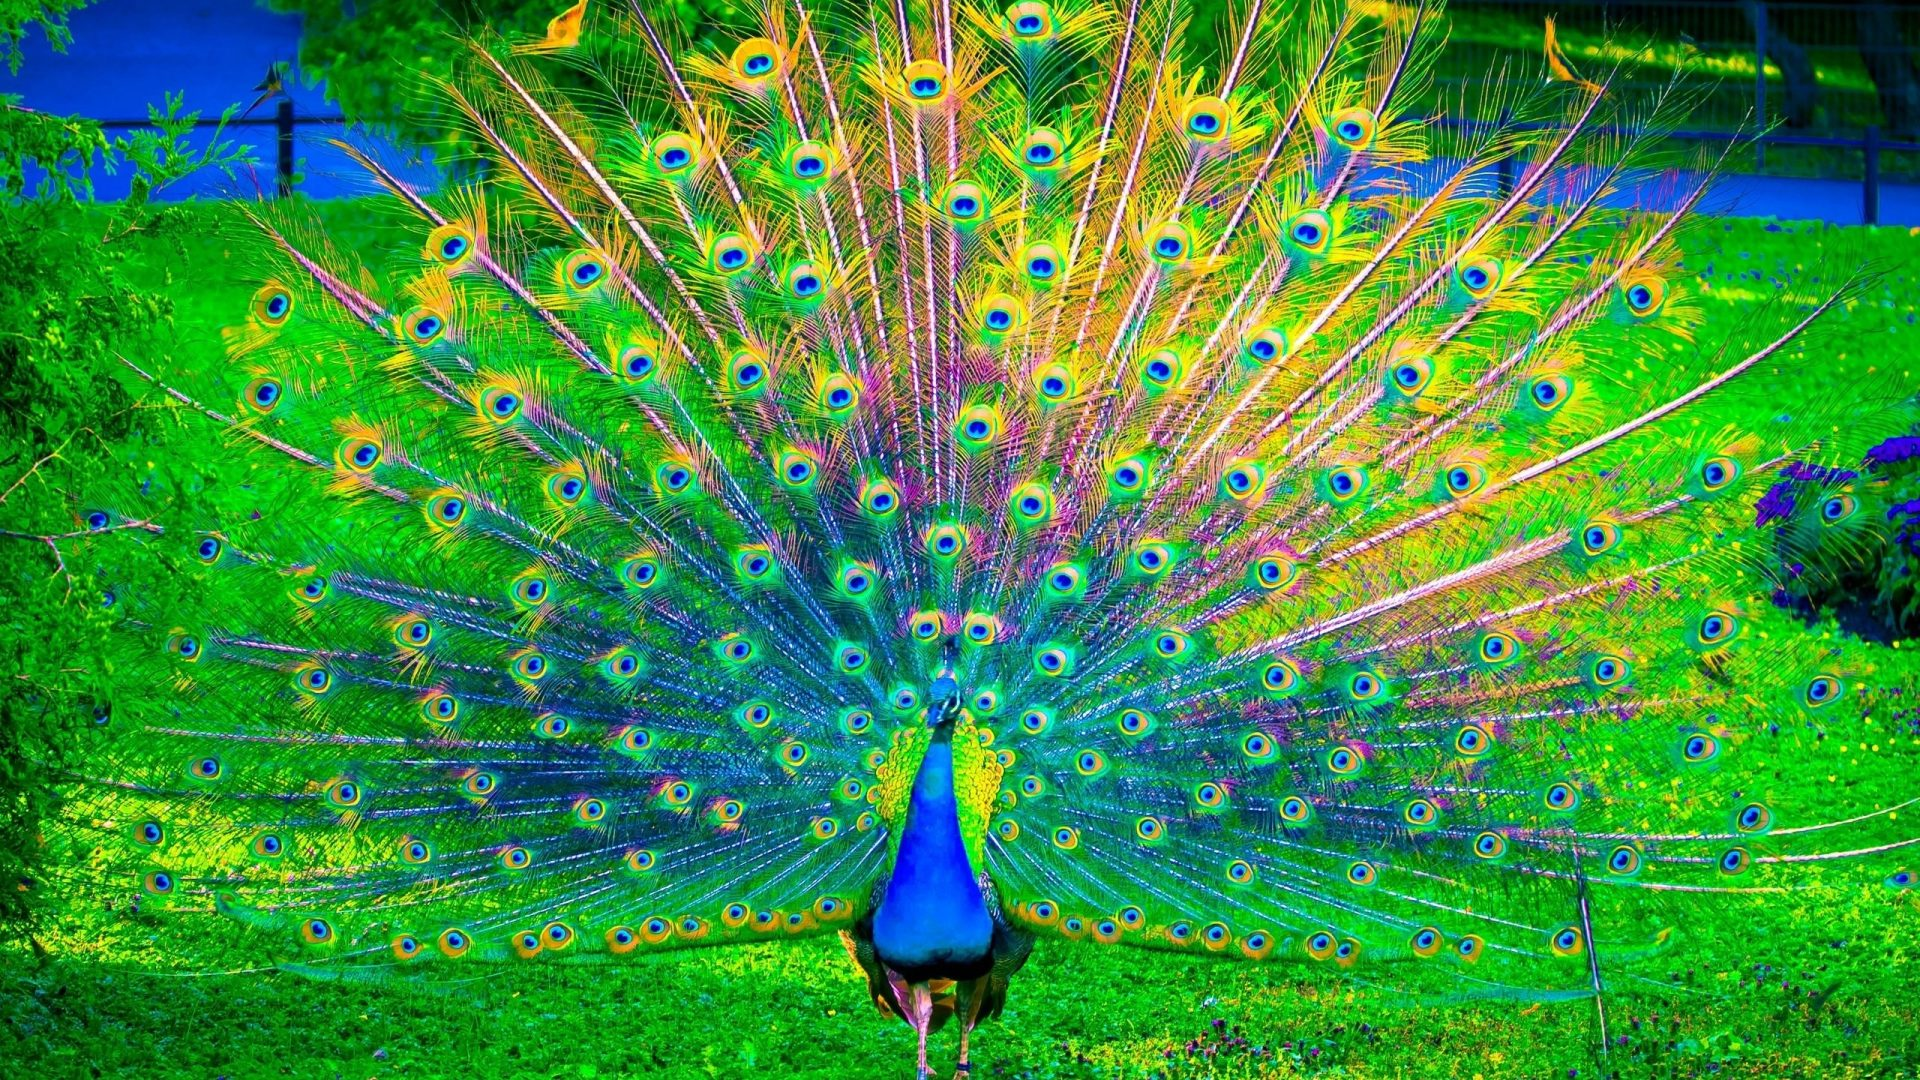 Peacock Colorful Bird Birds Wallpaper Wallpapers - Resilience